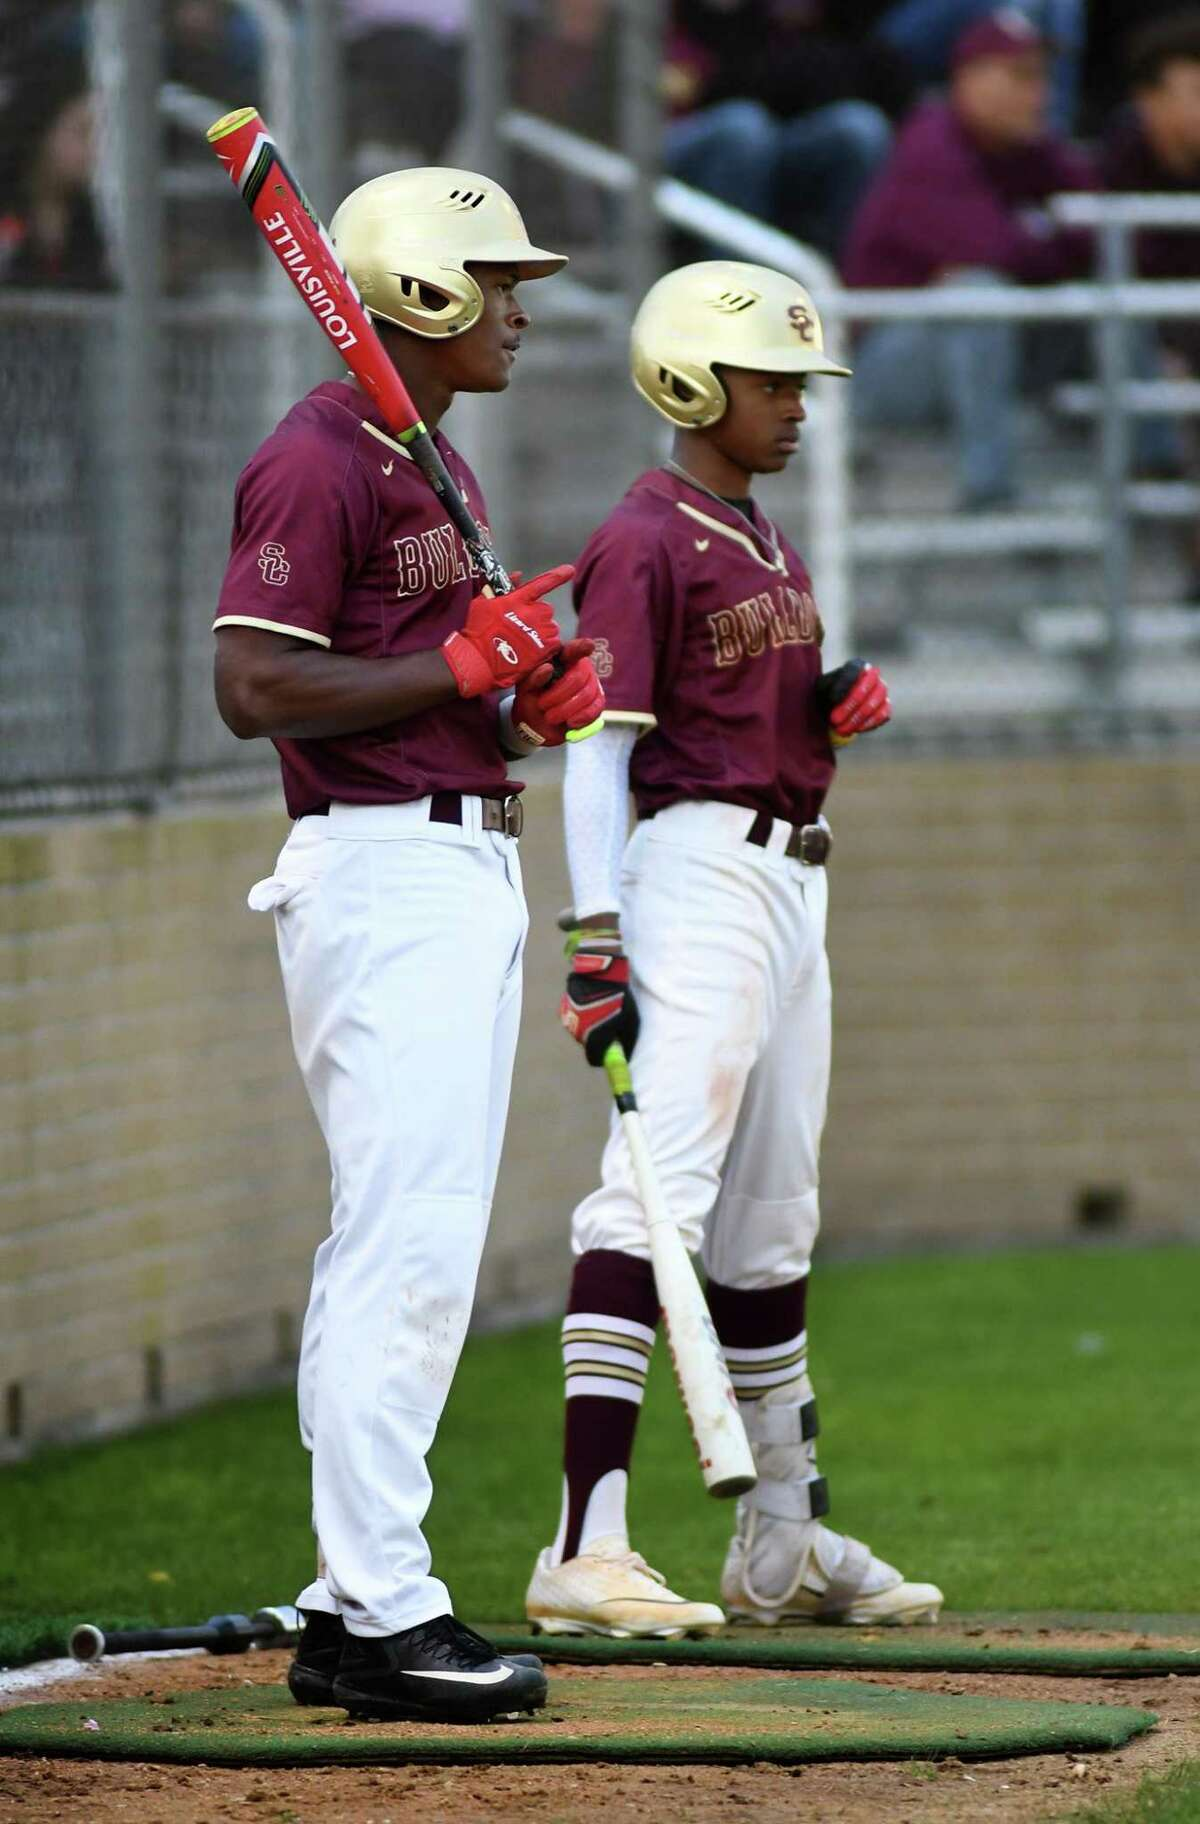 Andre Duplantier II, from left, a Summer Creek senior and varsity shortstop and pitcher for the Bulldogs, stands in the on deck circle with his brother Jayden, a Summer Creek freshman and varsity second baseman, before their at bats in the bottom of the 1st inning of their District 22-6A matchup with the Dobie Longhorns at SCHS on March 14, 2019.